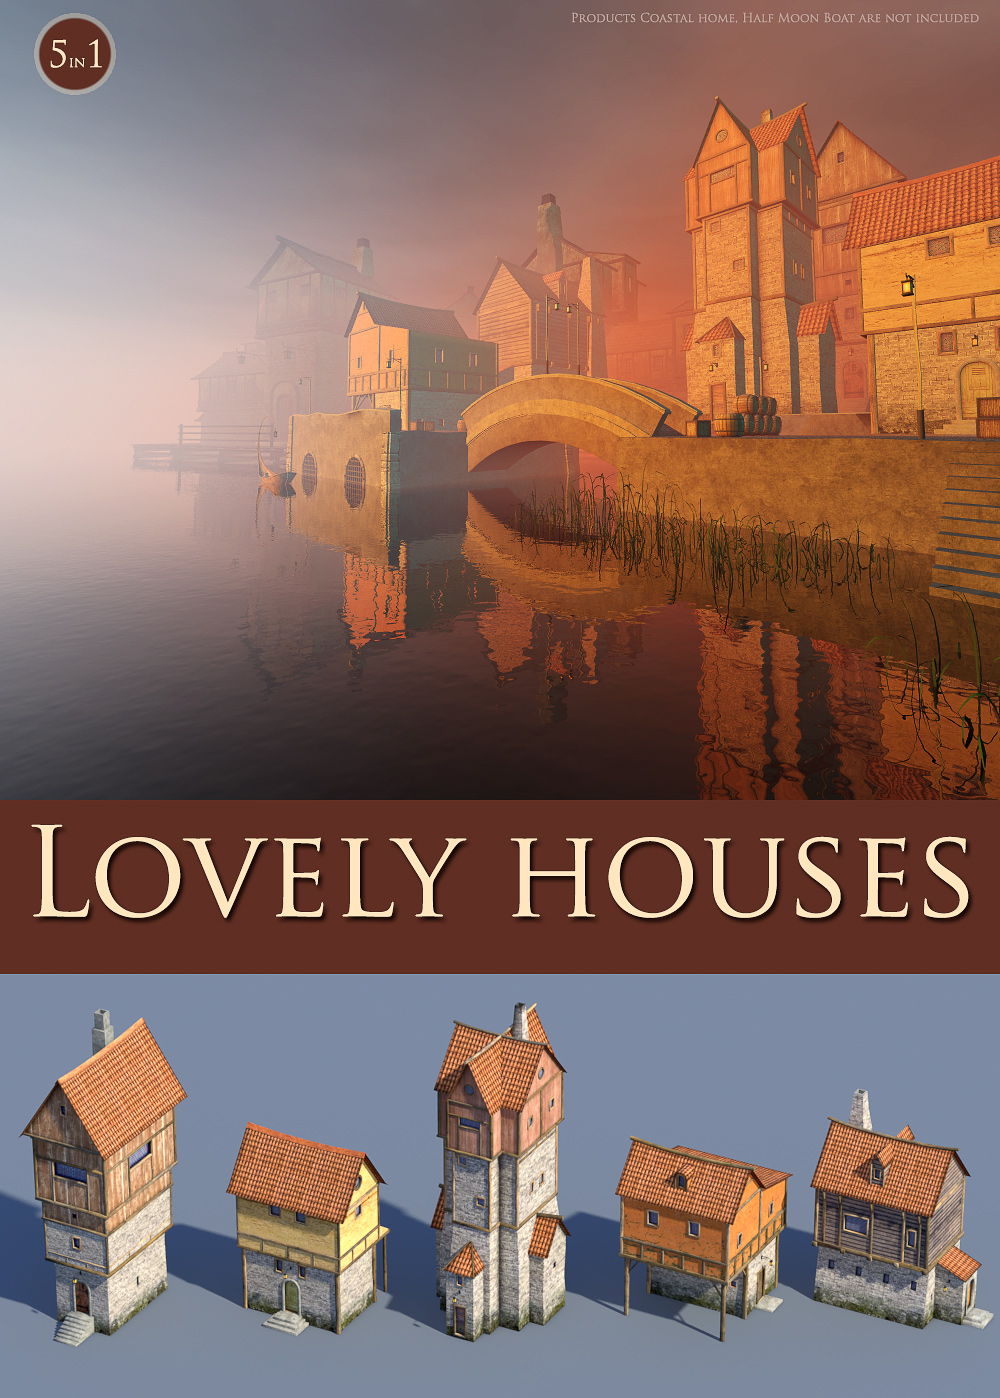 Lovely houses by 1971s